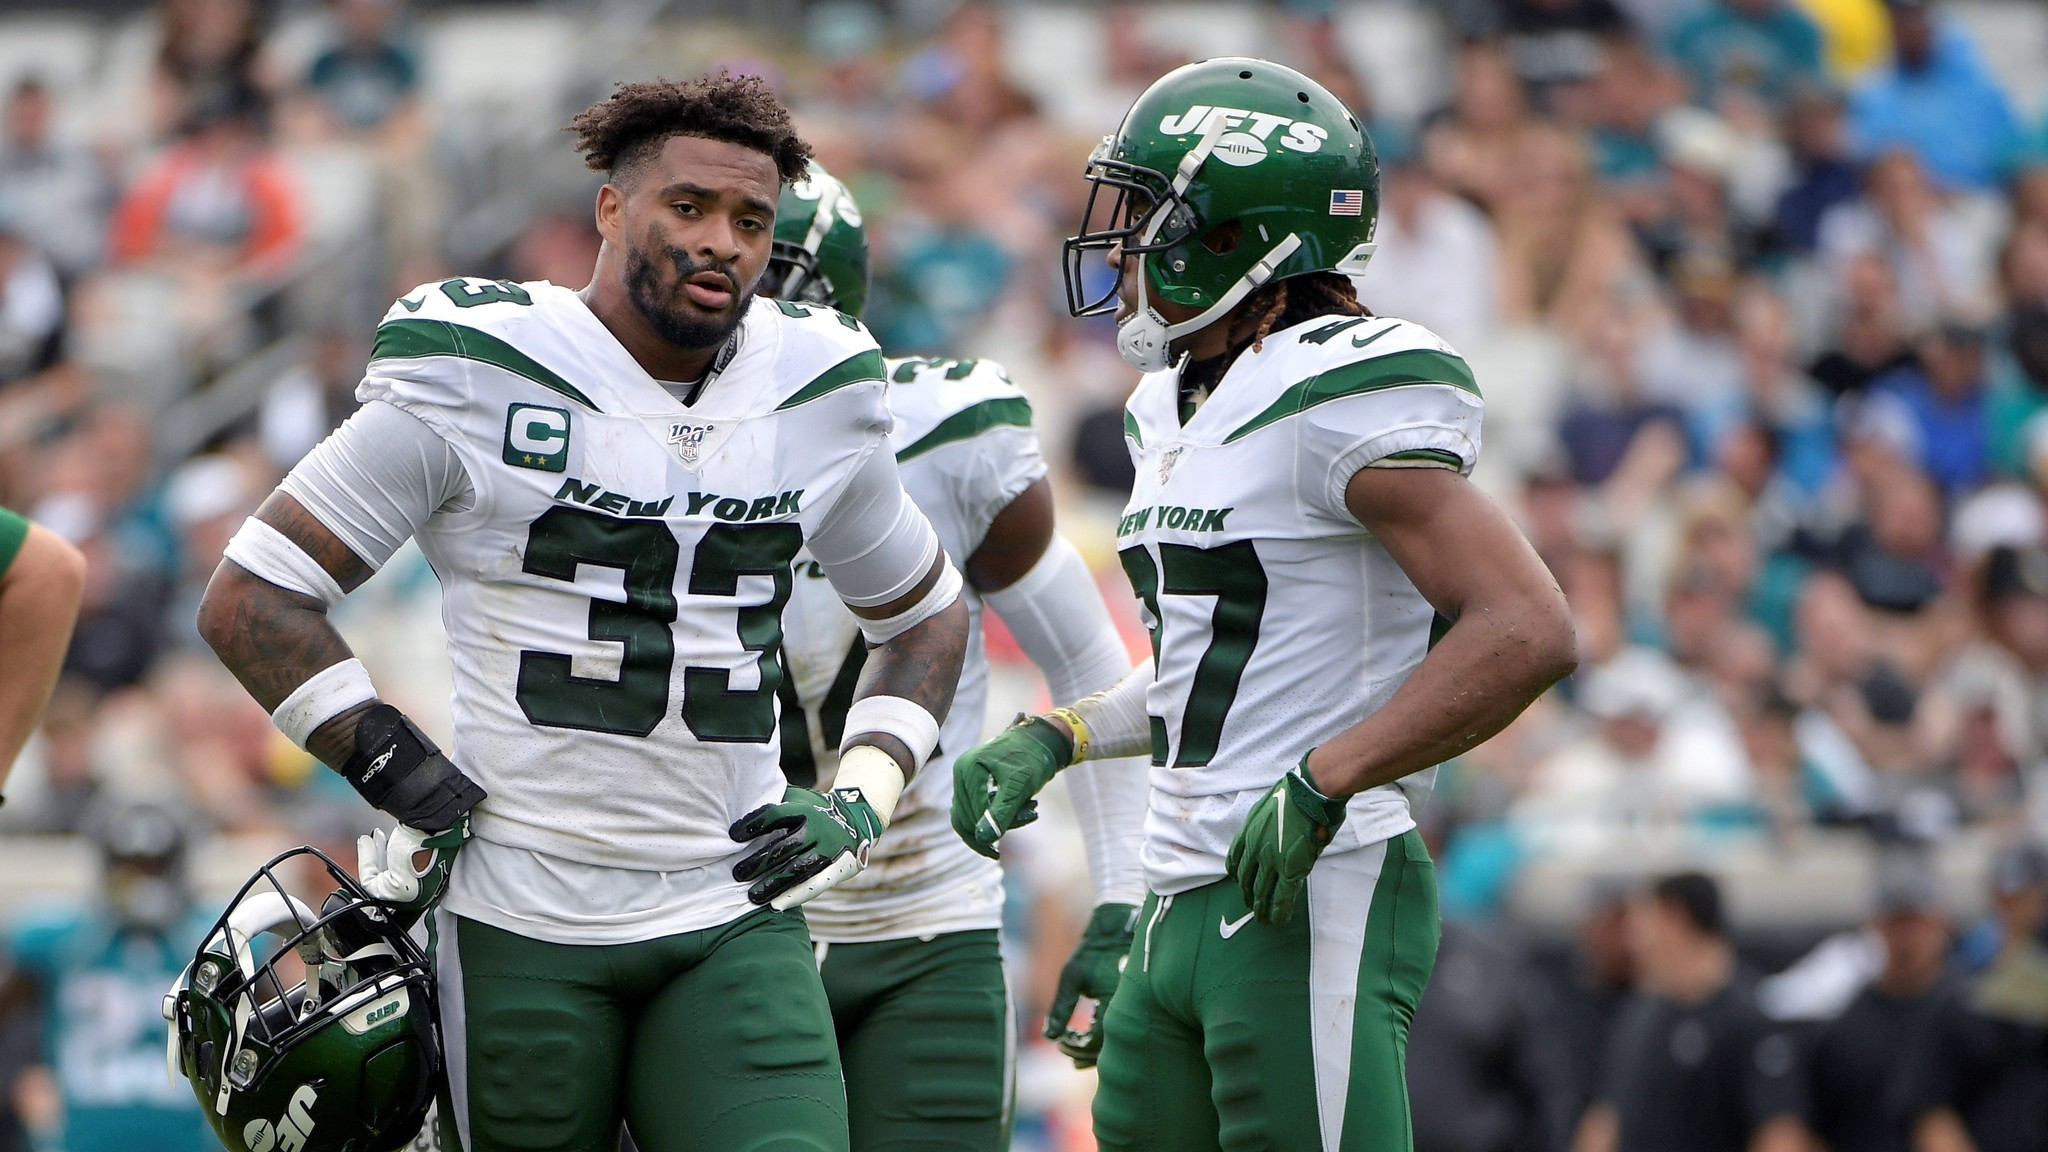 Jamal Adams says he wants to lead Jets to Super Bowl after clearing the air with Adam Gase and Joe Douglas